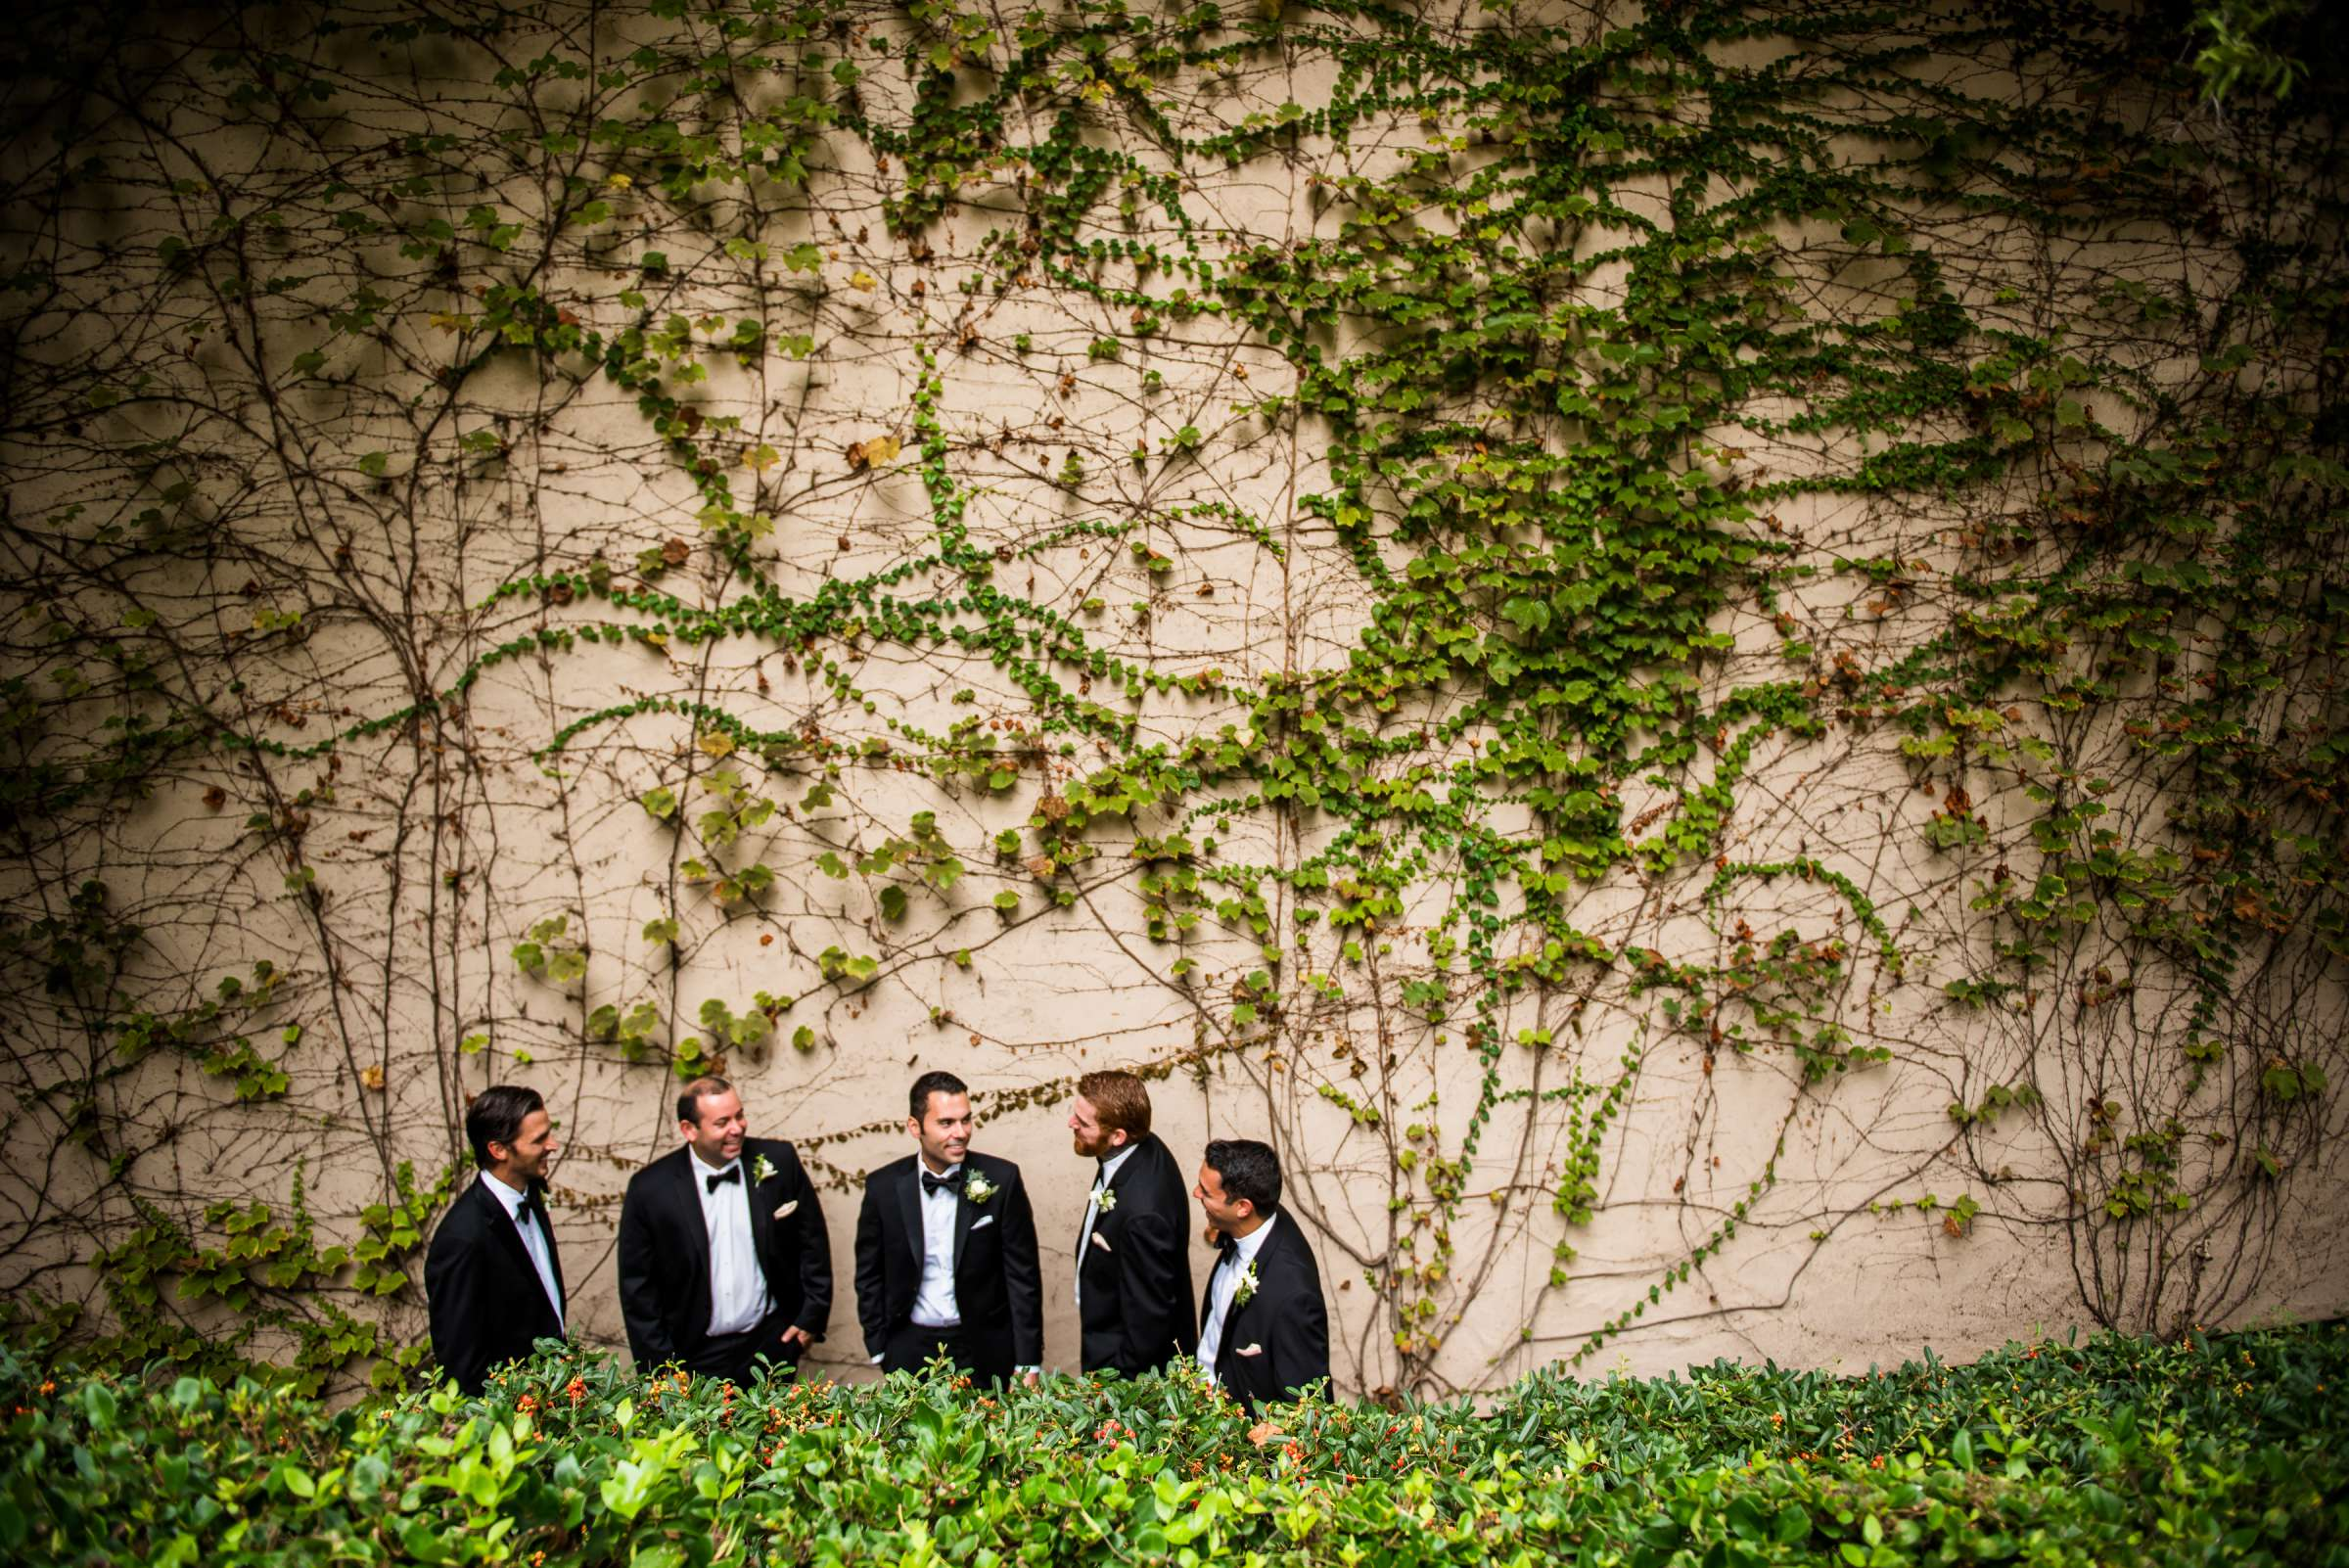 Rancho Bernardo Inn Wedding coordinated by Très Chic Events, Stefania and Nicholas Wedding Photo #53 by True Photography